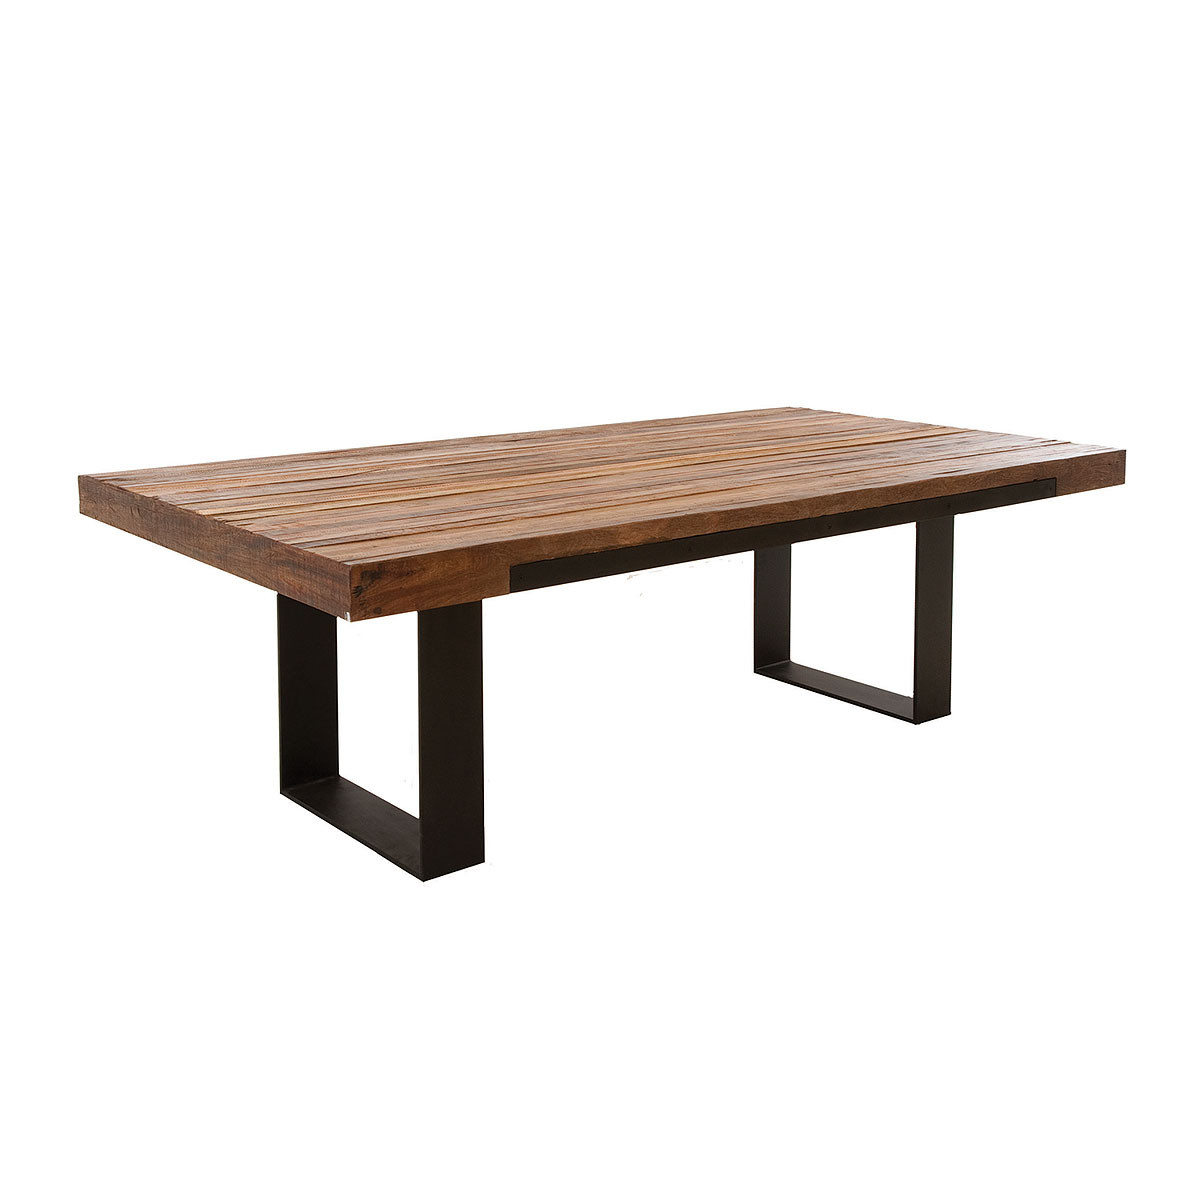 Metal Dining Room Furniture Dining Table Make Dining Table Recycled Wood